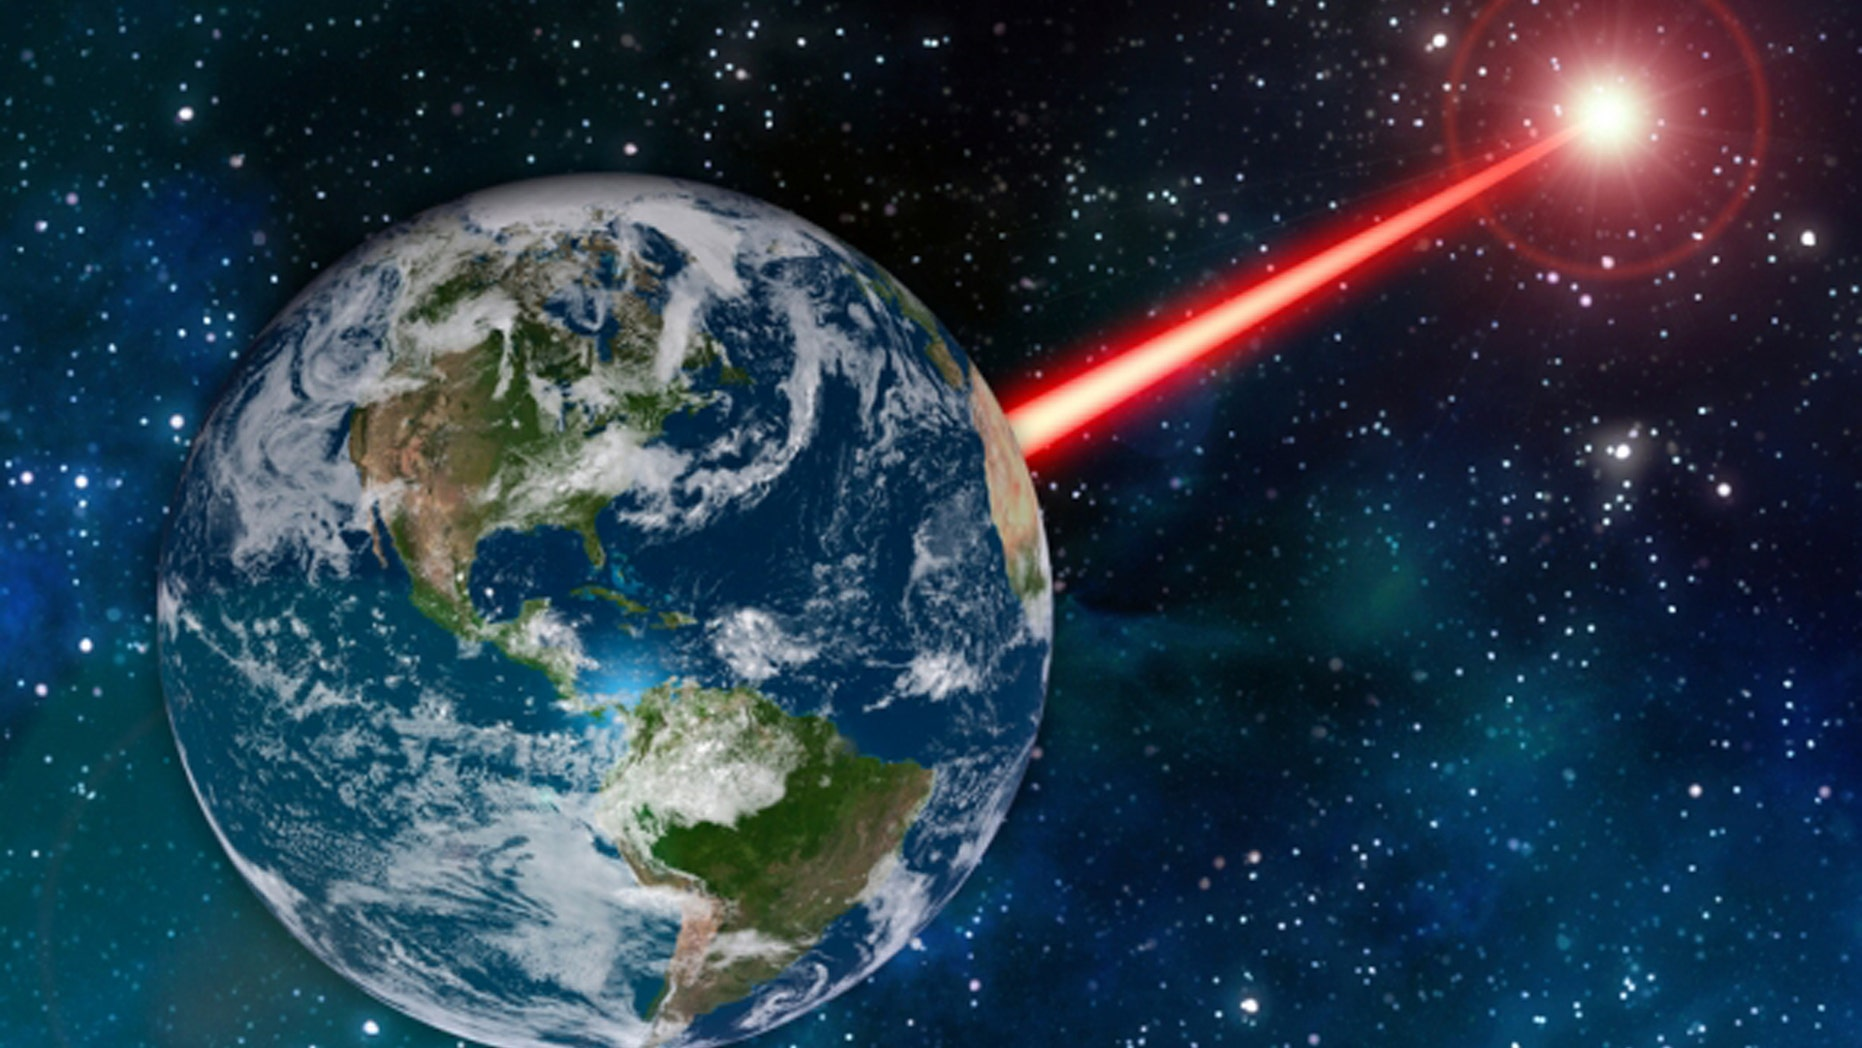 A Powerful Laser Beam Might Help Us Communicate With Extraterrestrials